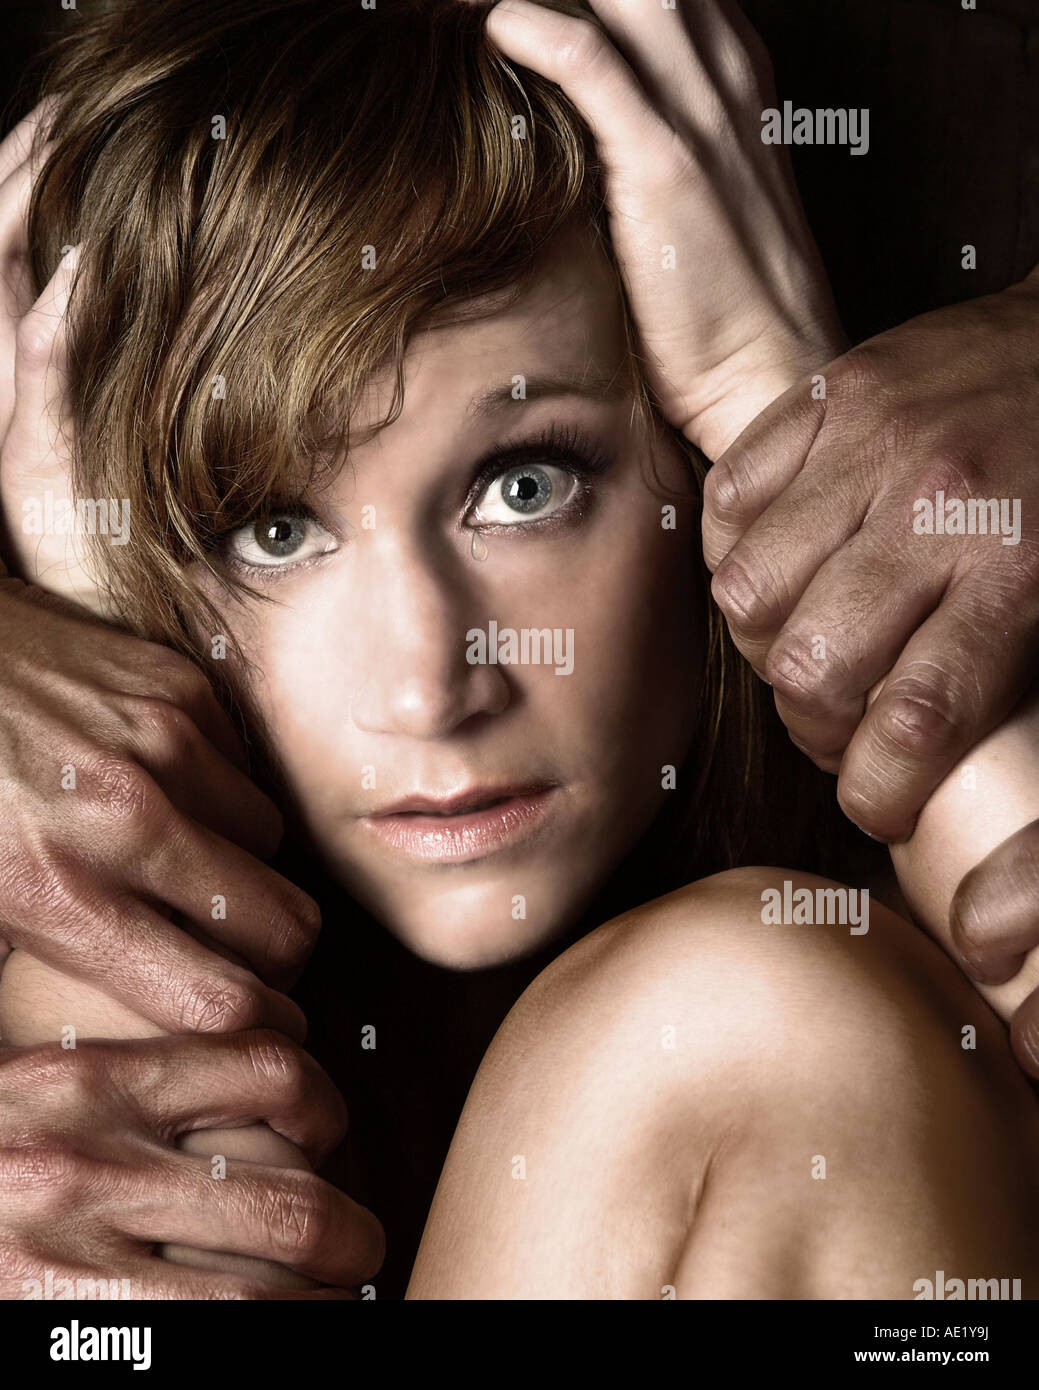 A young girl grabbing at her hair while several hands grab at her arms. Stock Photo